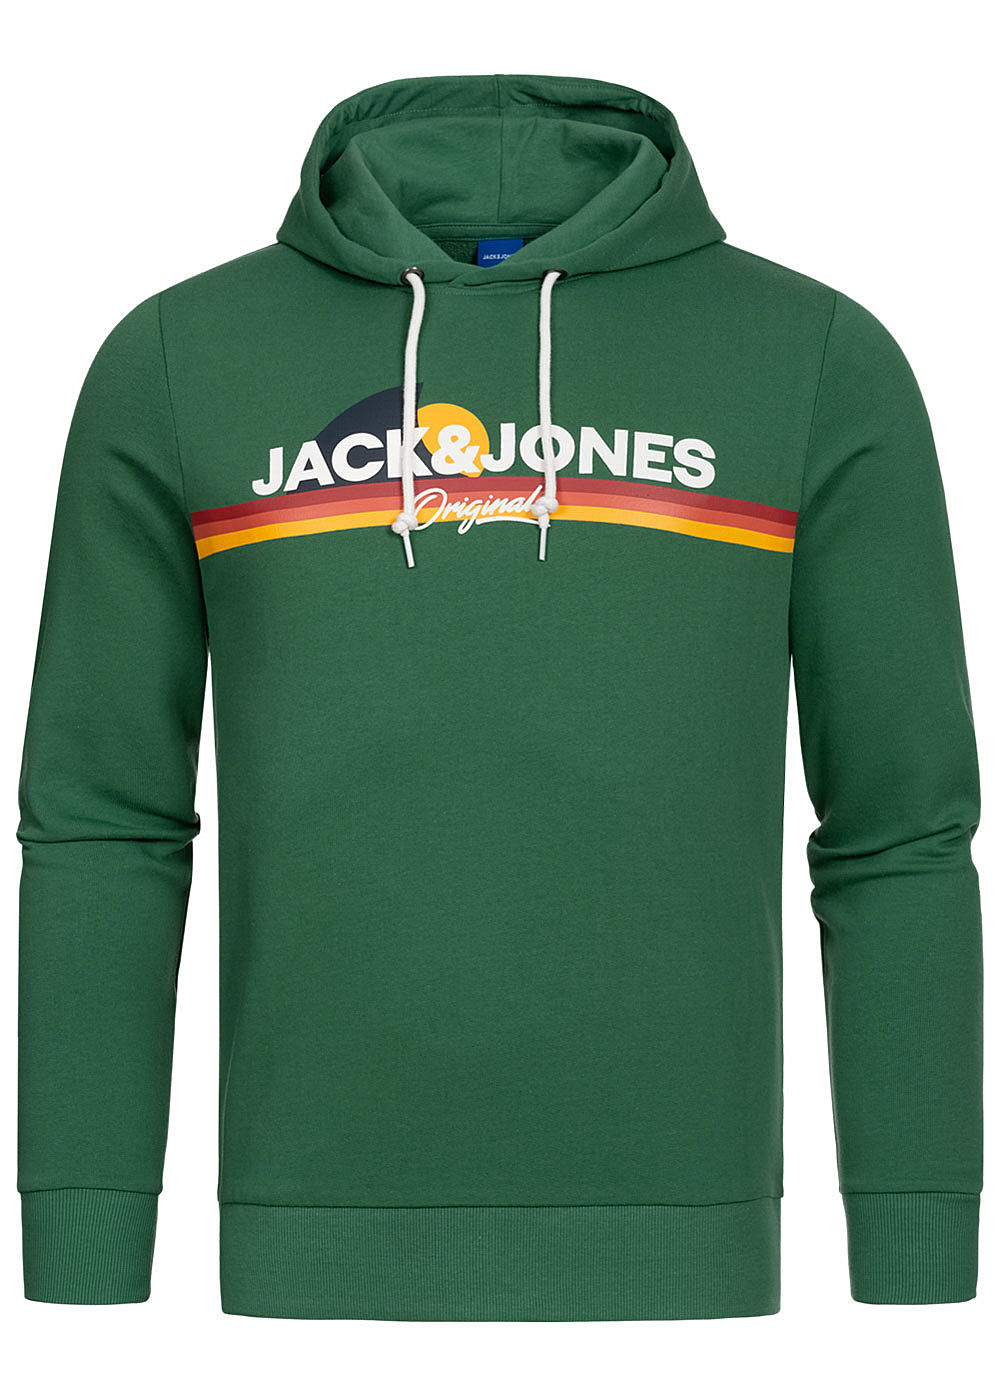 Jack and Jones Herren Hoodie Kapuze Logo Print Streifen fir grün - Art.-Nr.: 20041638-S-GN